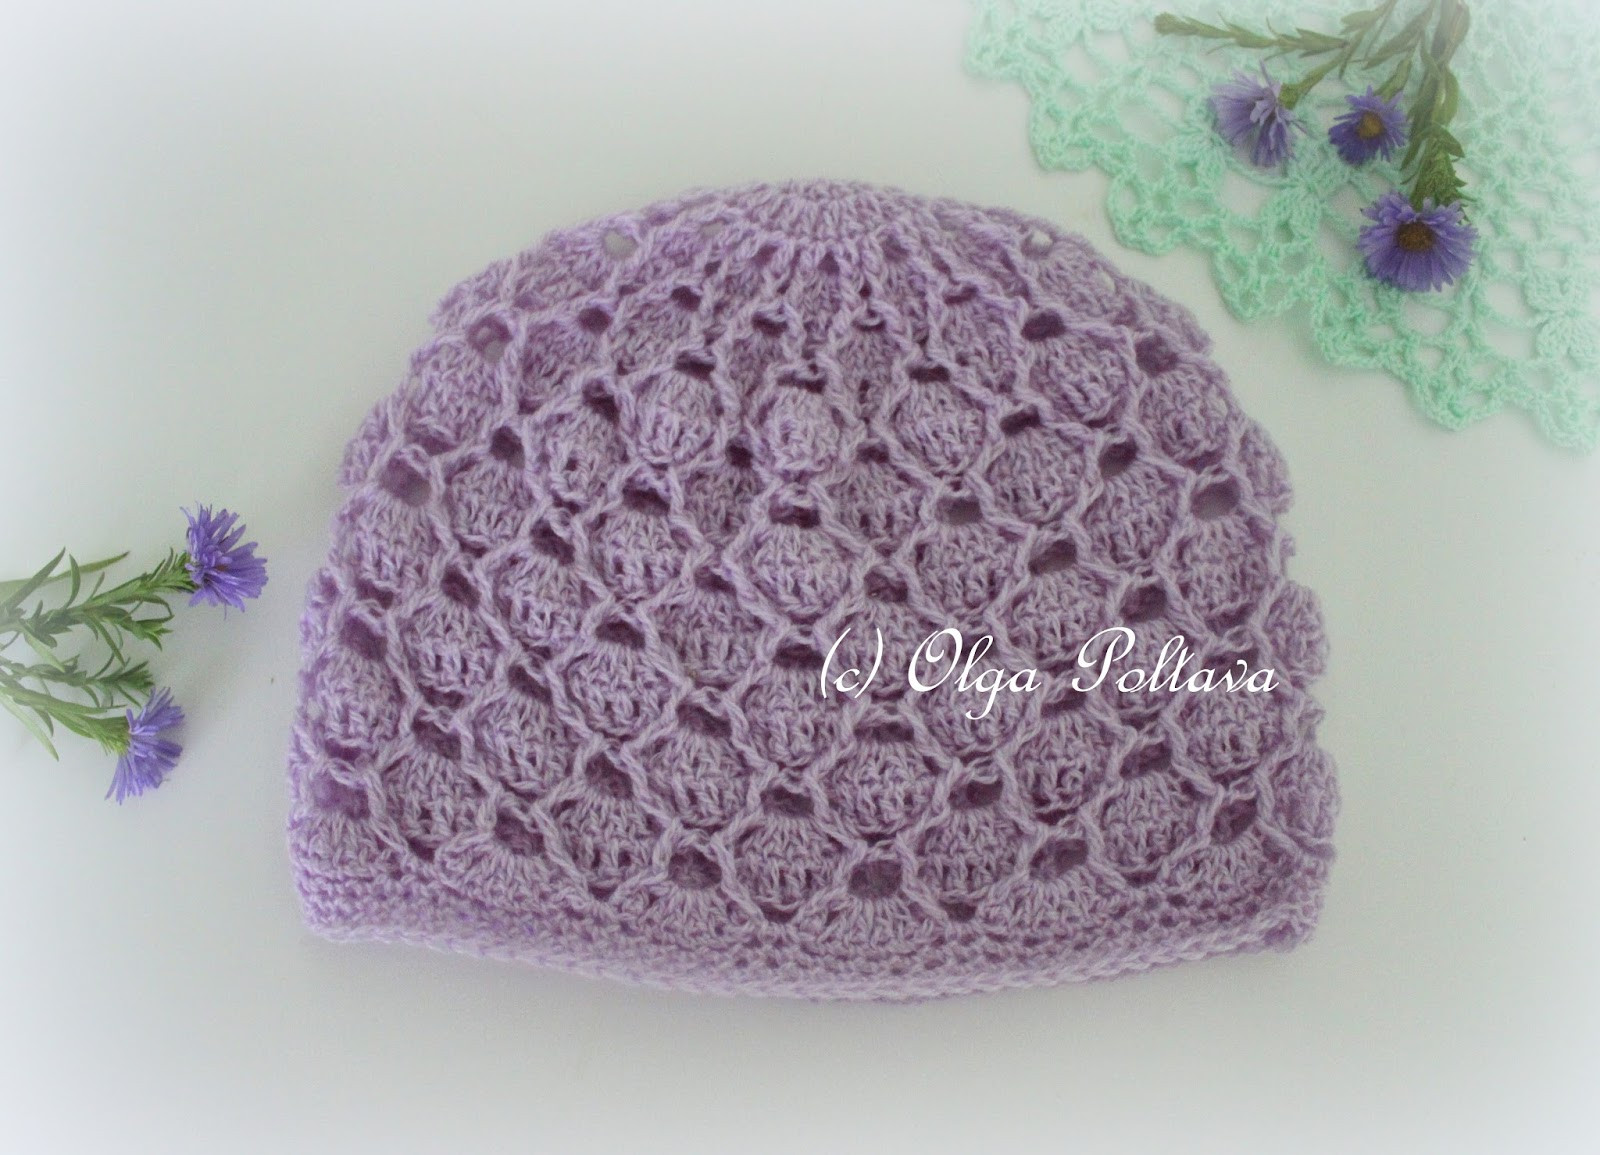 Newborn Baby Hat Crochet Pattern Inspirational Lacy Crochet Delicate Lace Crochet Baby Hat Free Pattern Of Superb 44 Pictures Newborn Baby Hat Crochet Pattern